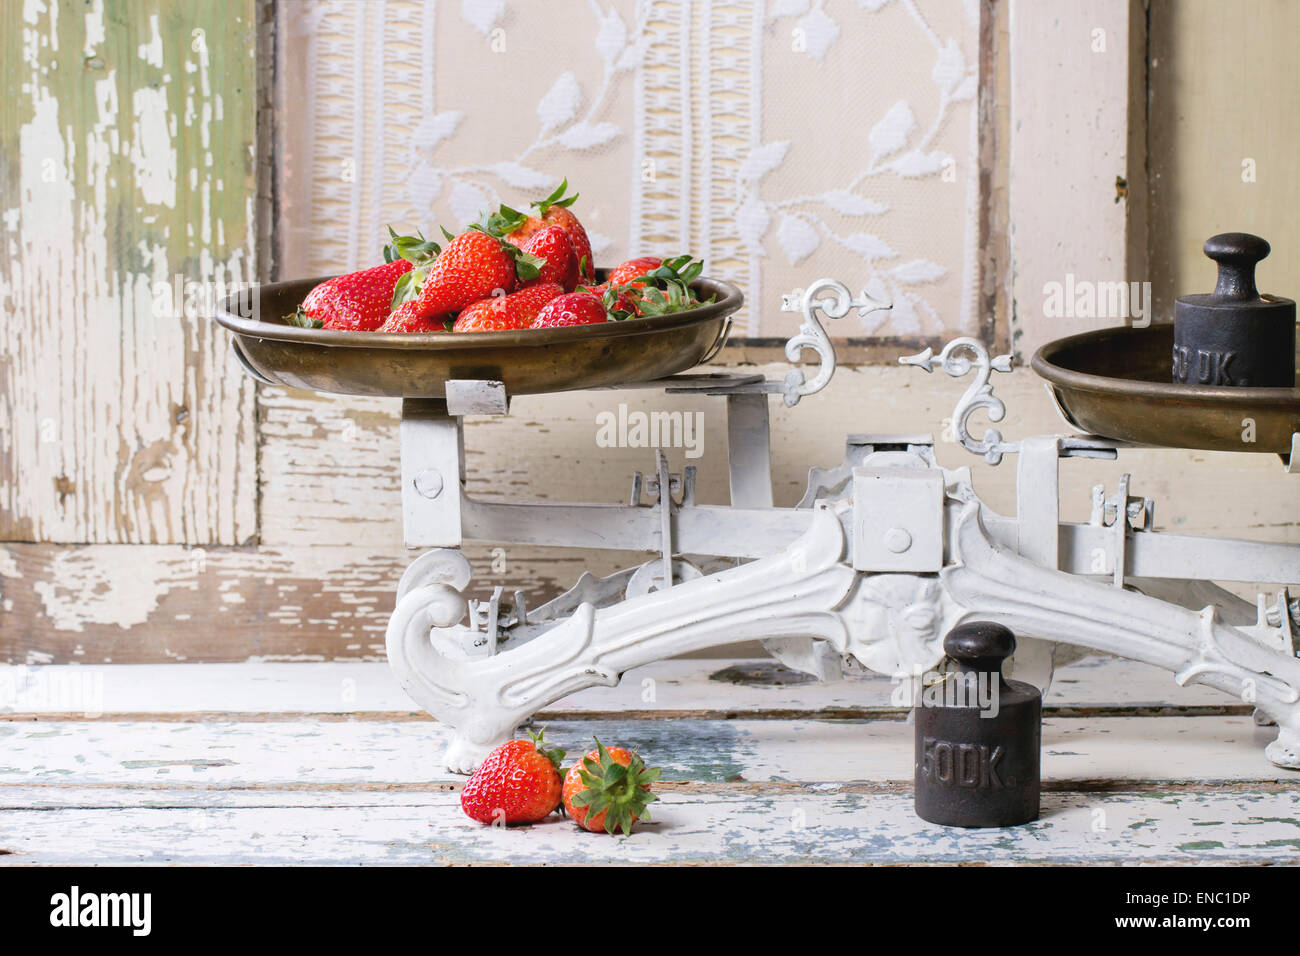 Weights and vintage scales with fresh strawberries over white wooden table - Stock Image